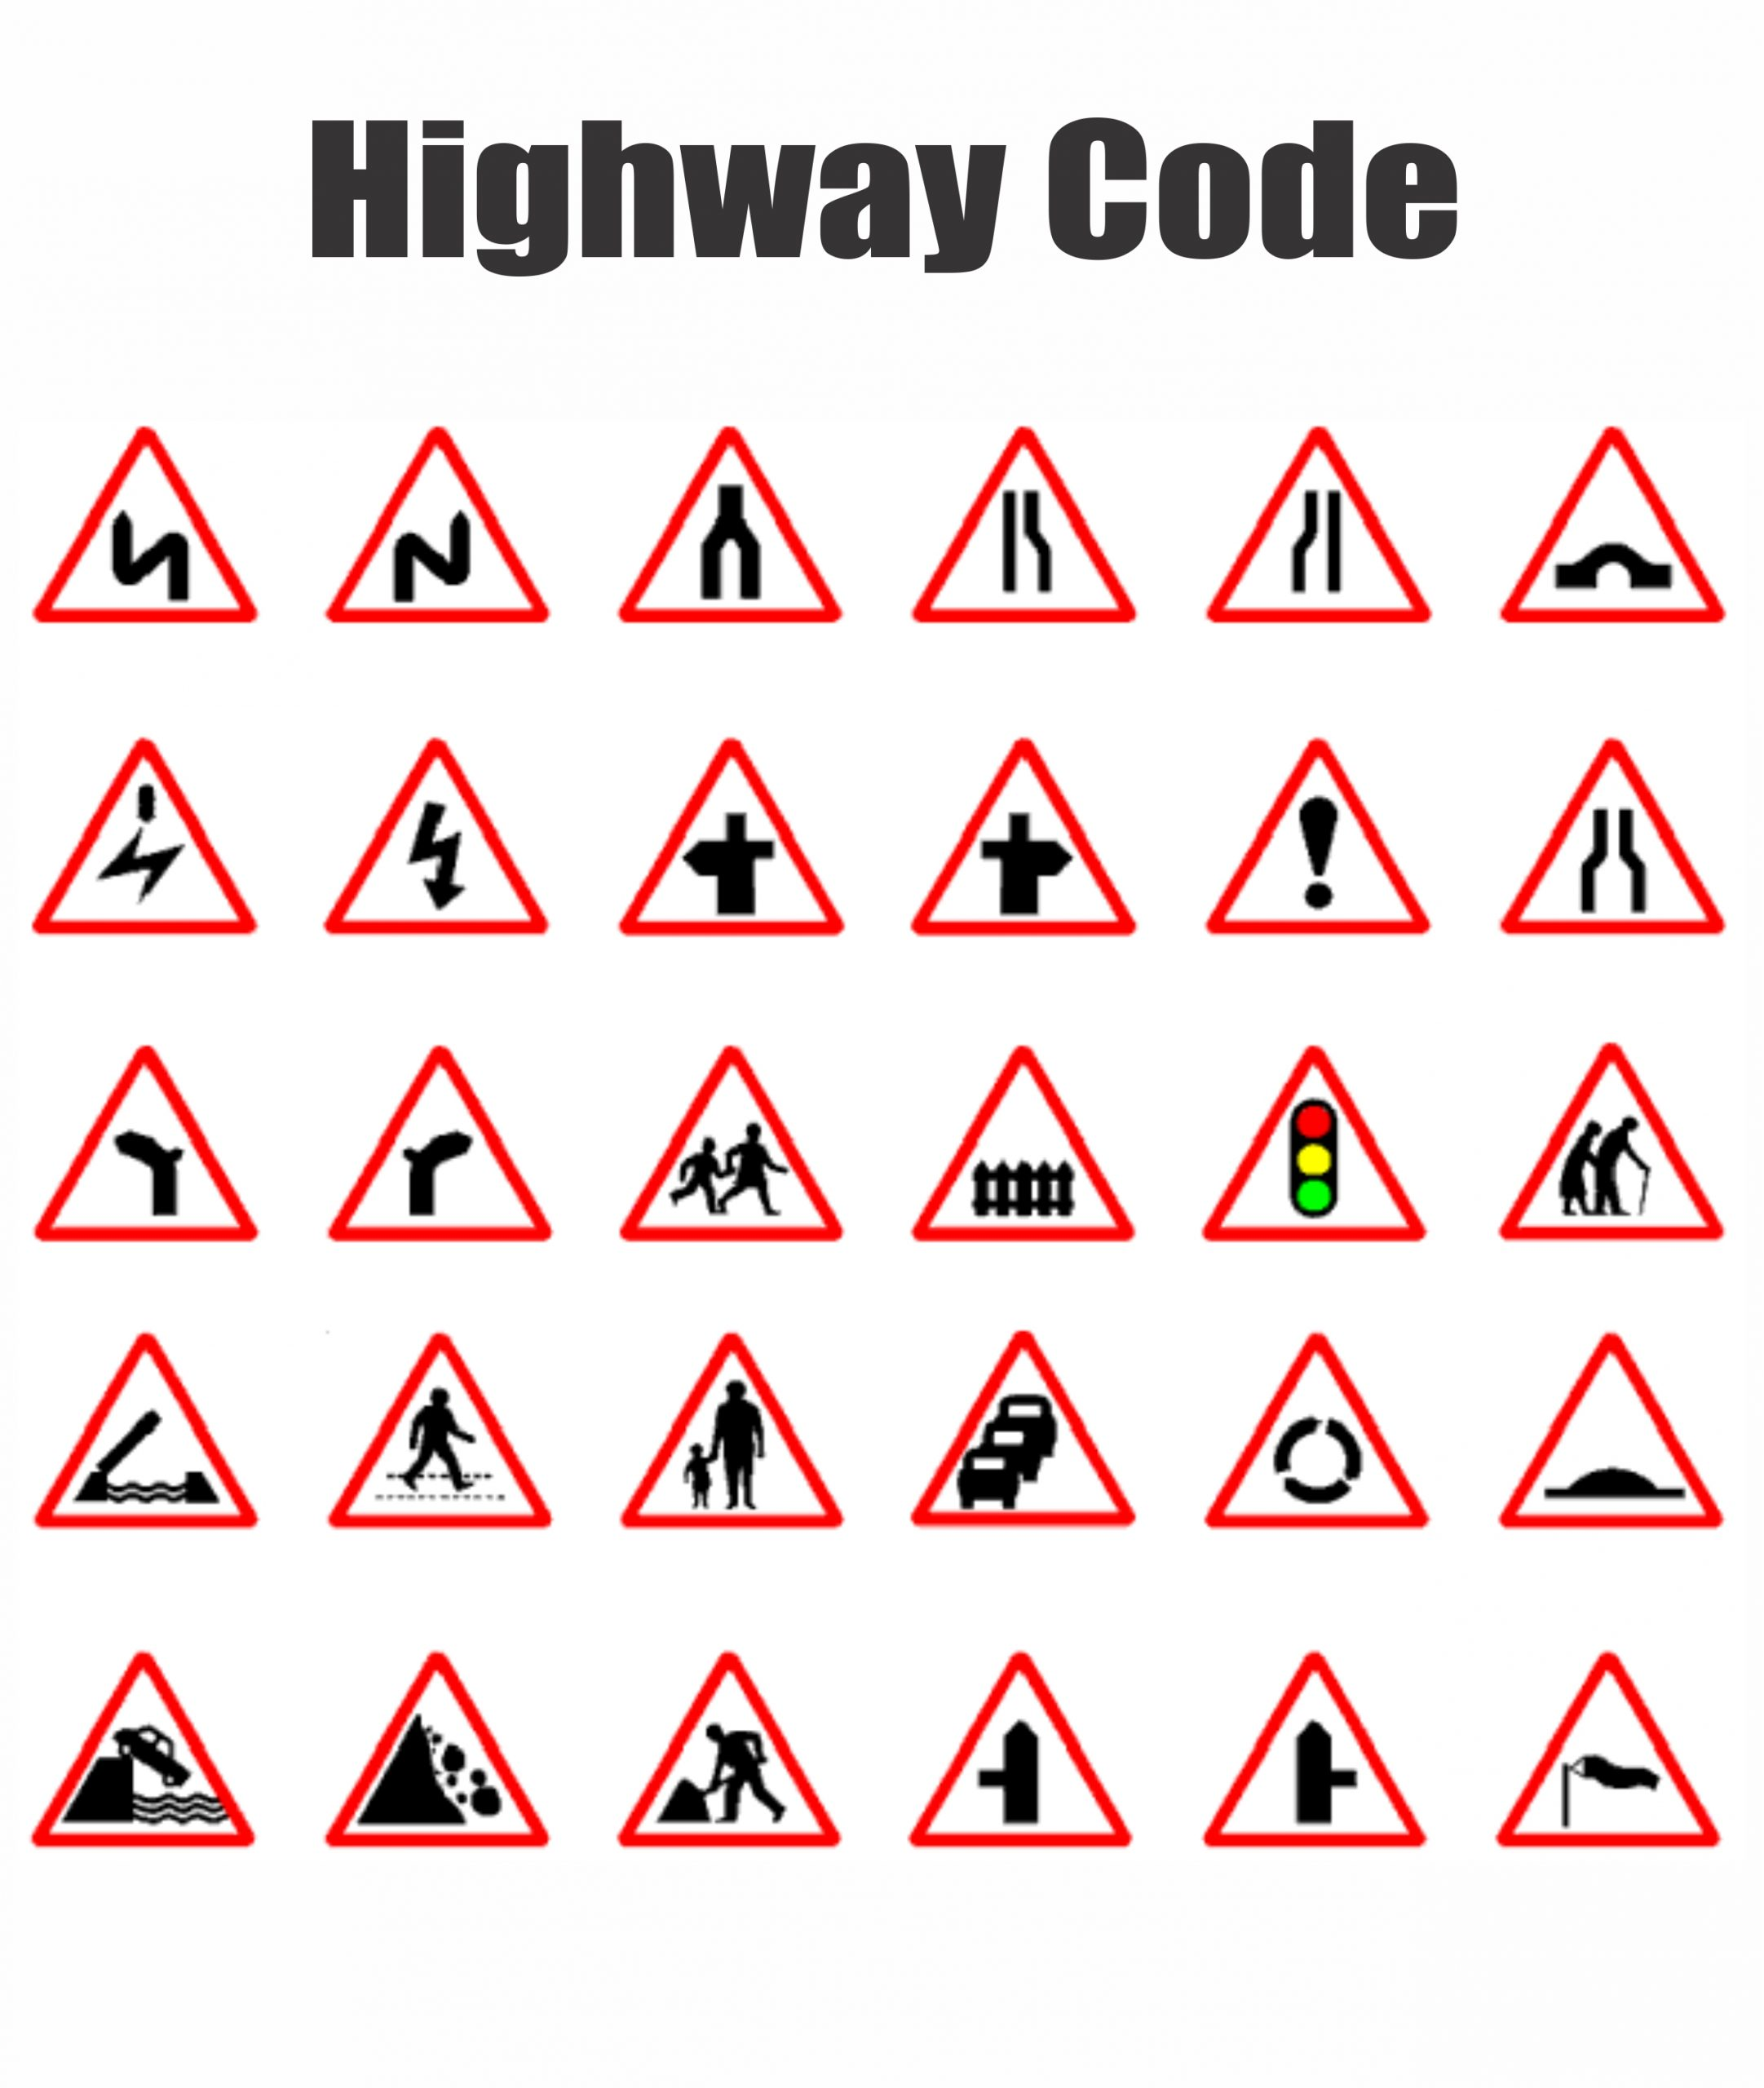 The Highway Code - Pass Expert - Driving Made Easy